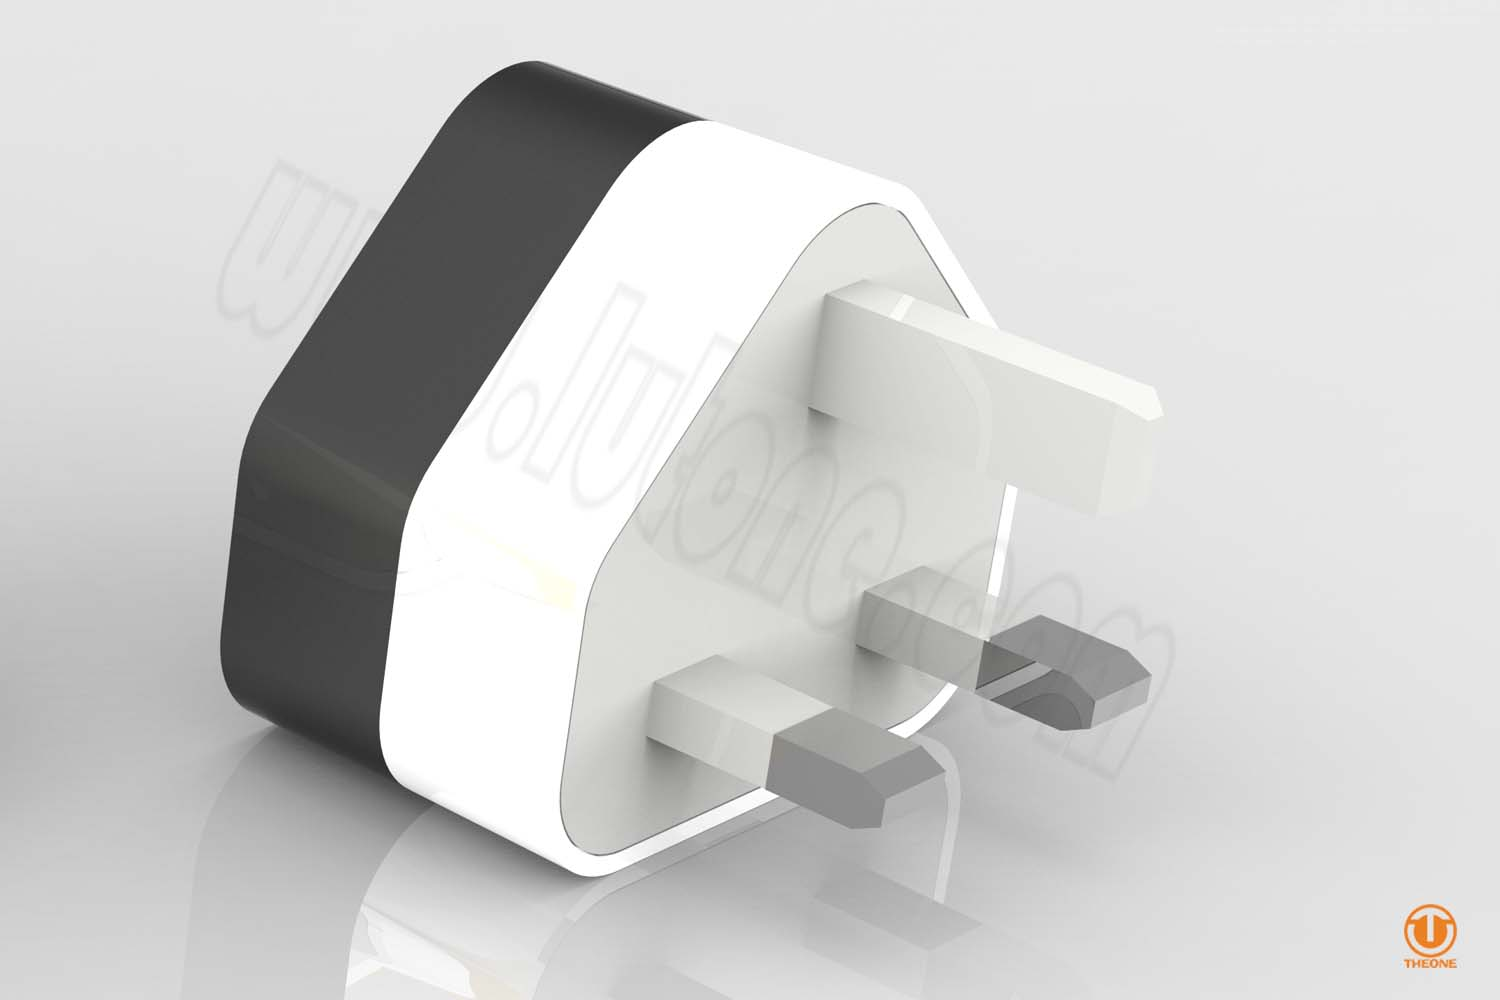 tc01a6-1 wall charger